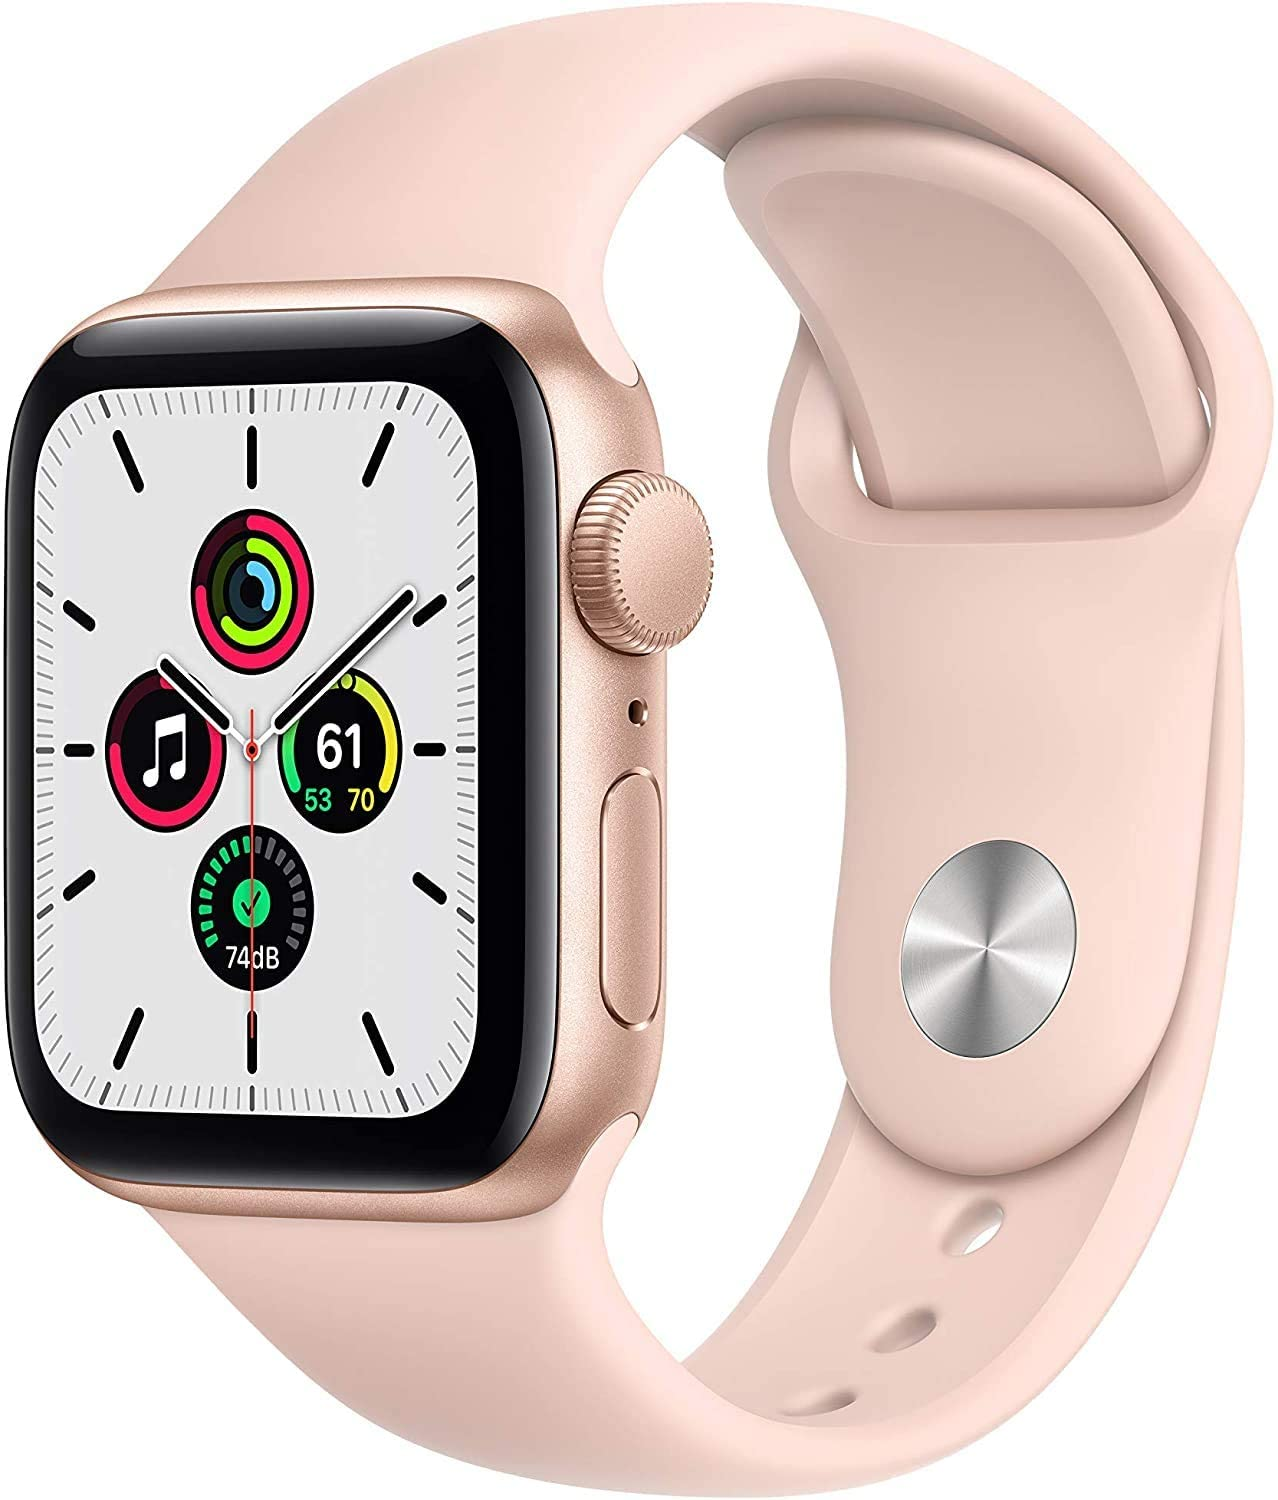 T500 PLUS Smart watch Rose Gold/Pink, BLUETOOTH, ANDROID & APPLE compatable FULLY FEATURED !!!!!